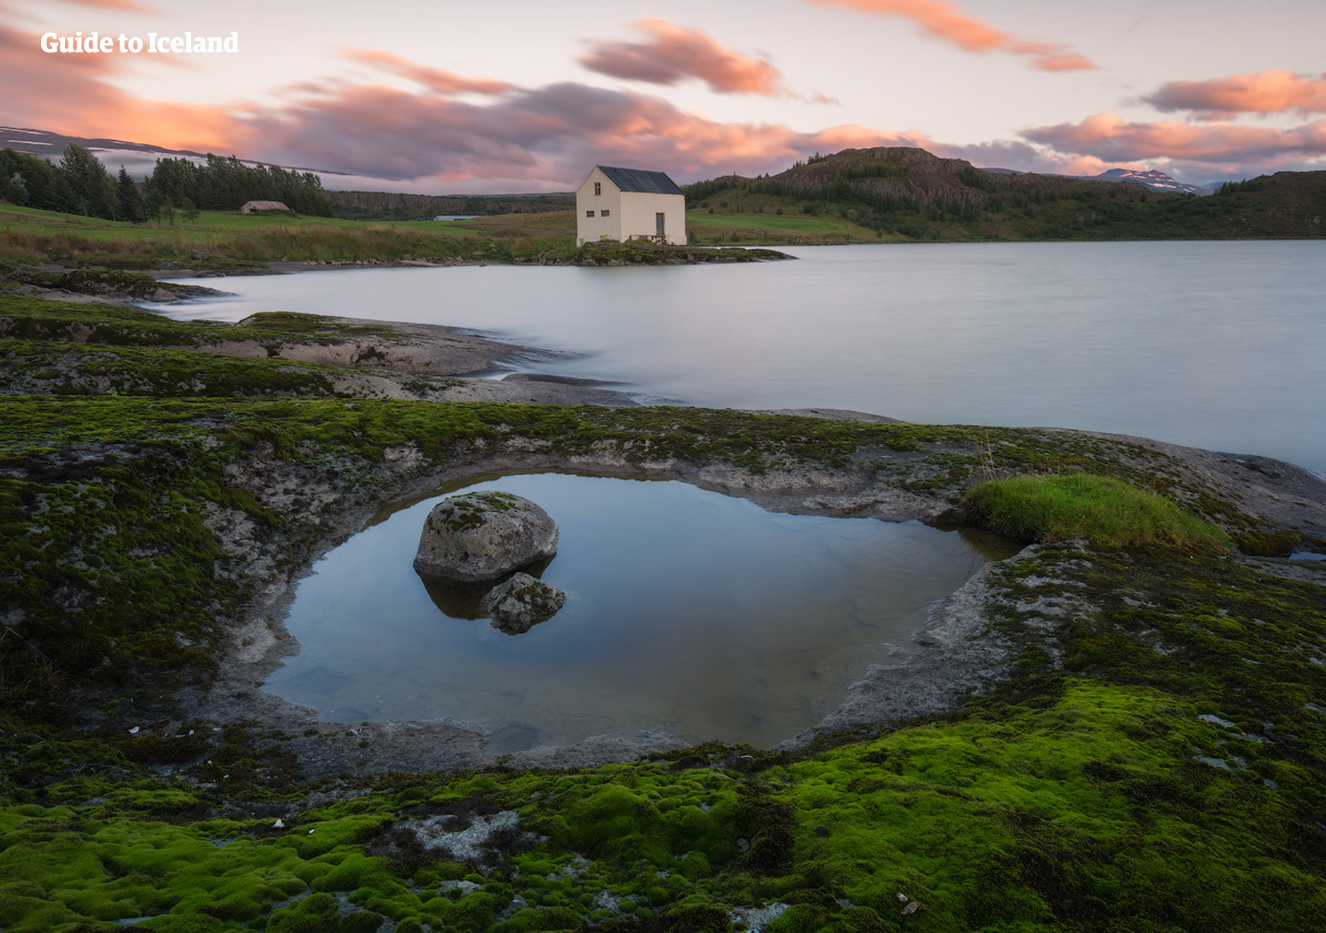 10 Day Summer Package | Guided Tour Around Iceland with Free Days in Reykjavik - day 6